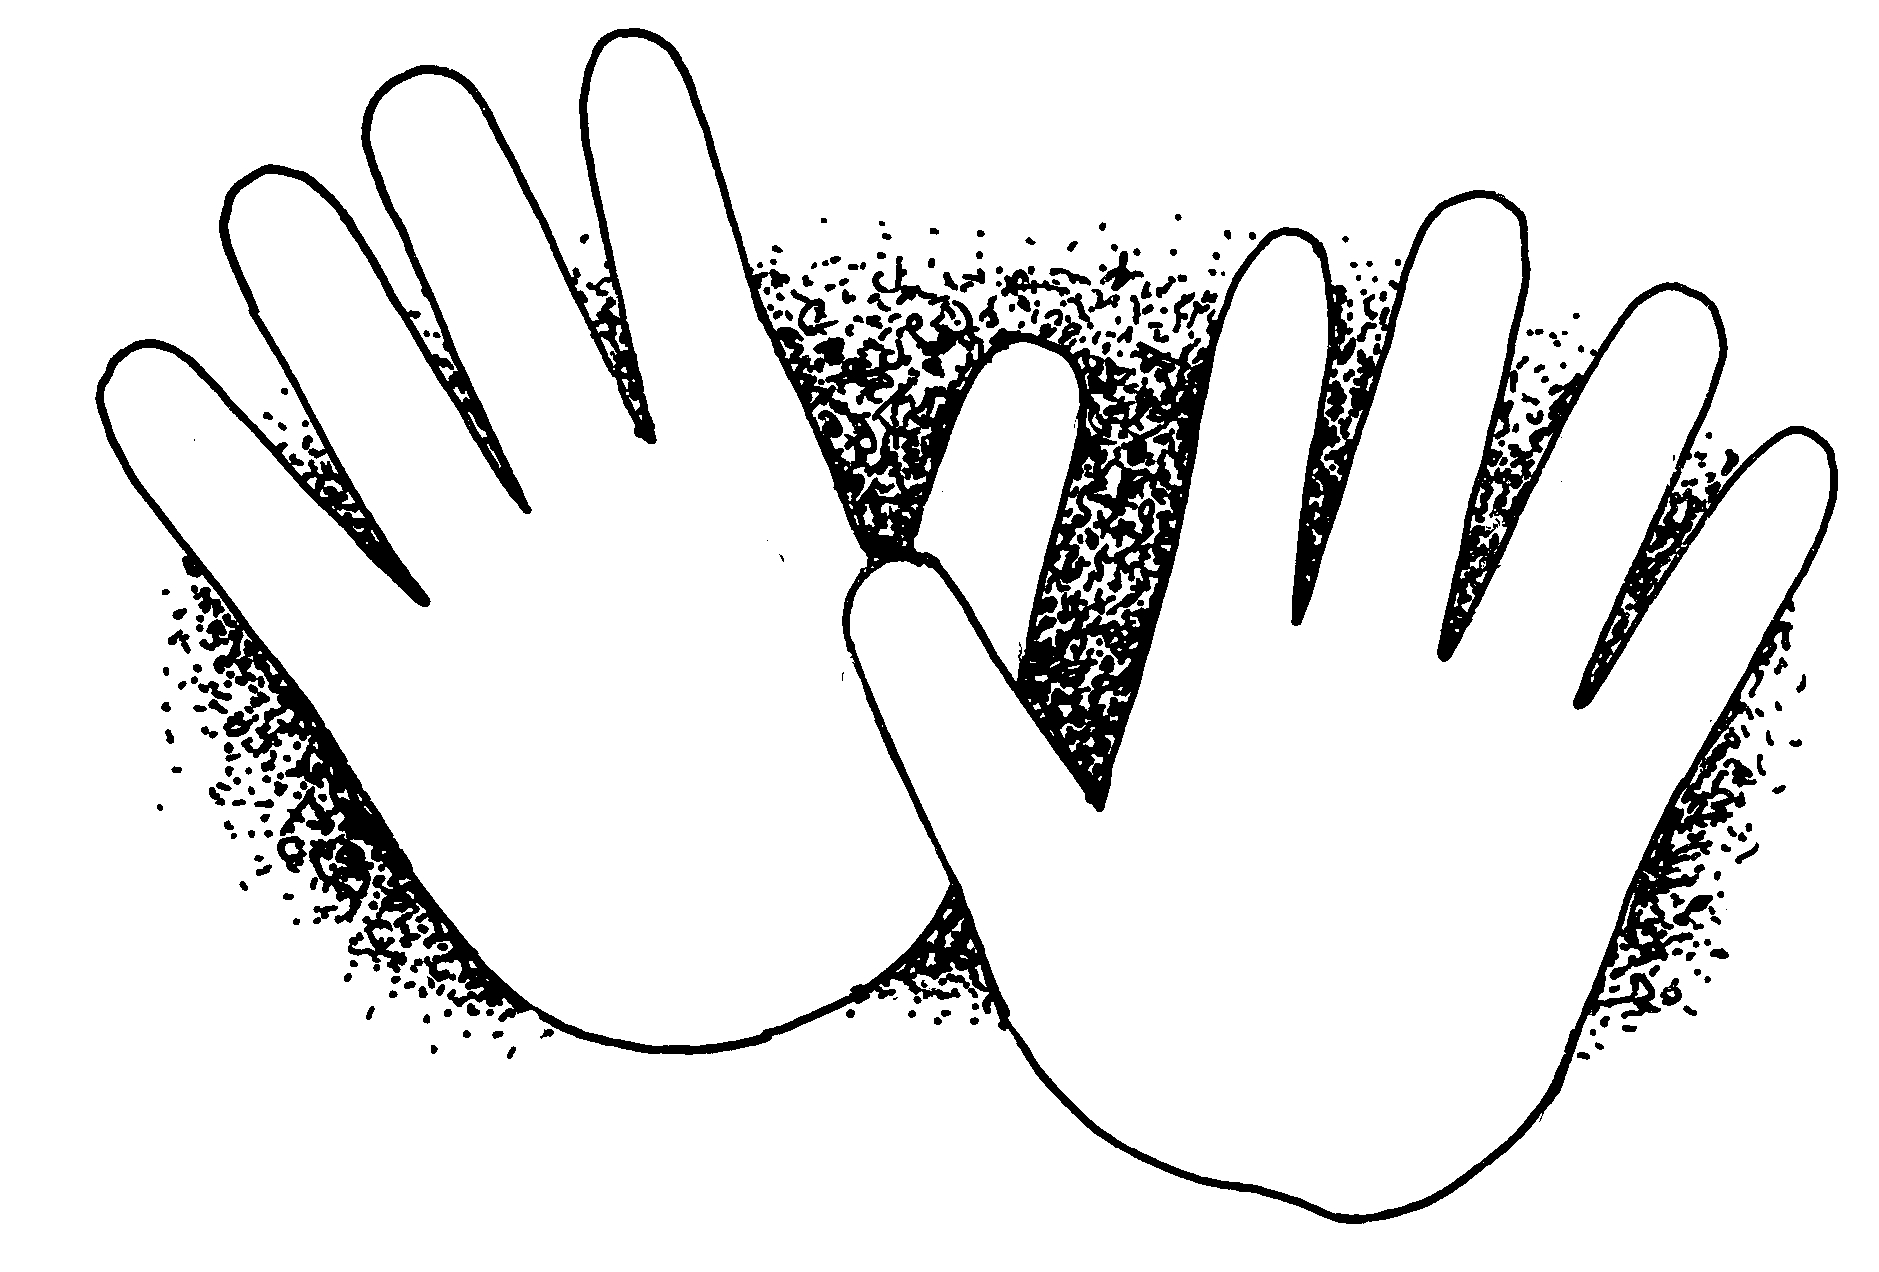 Handprint clipart helping hand Hands helping hand com Hands